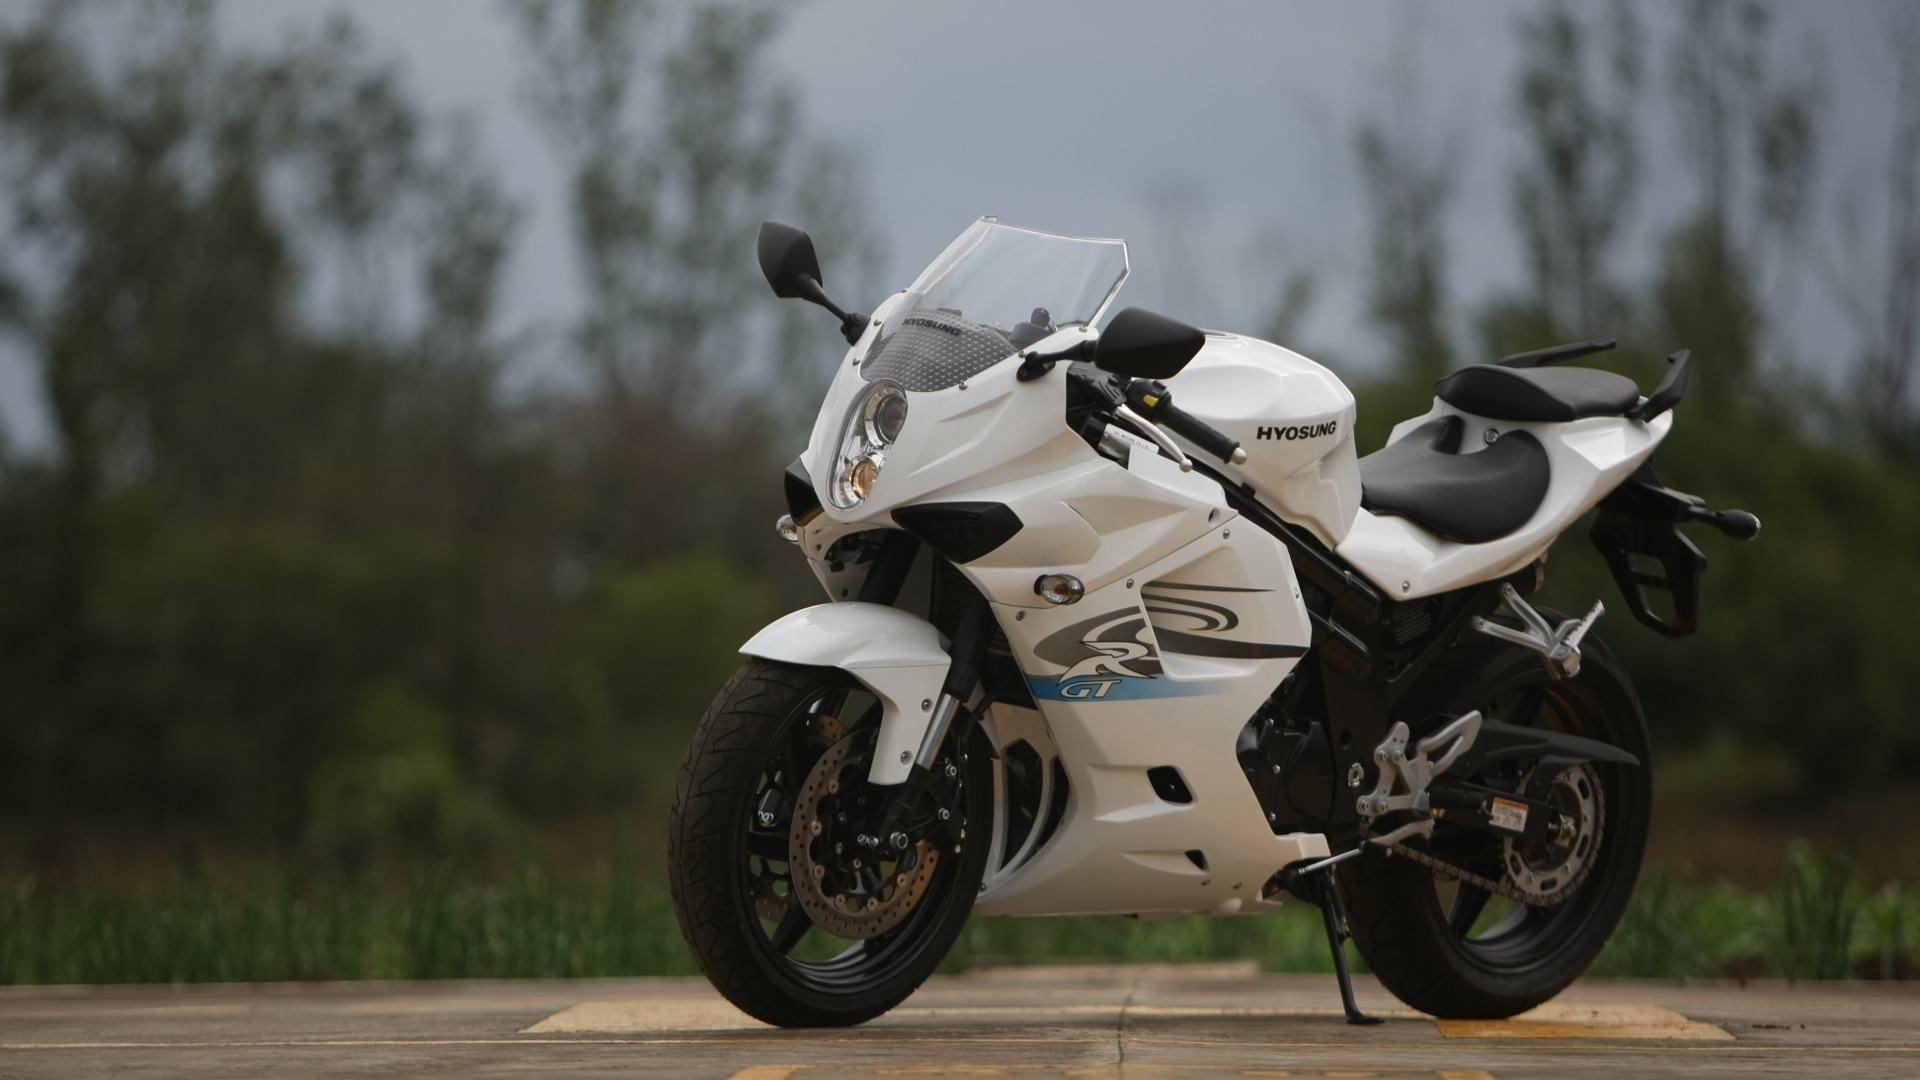 Hyosung GT650R 2013 STD - Price, Mileage, Reviews, Specification ...